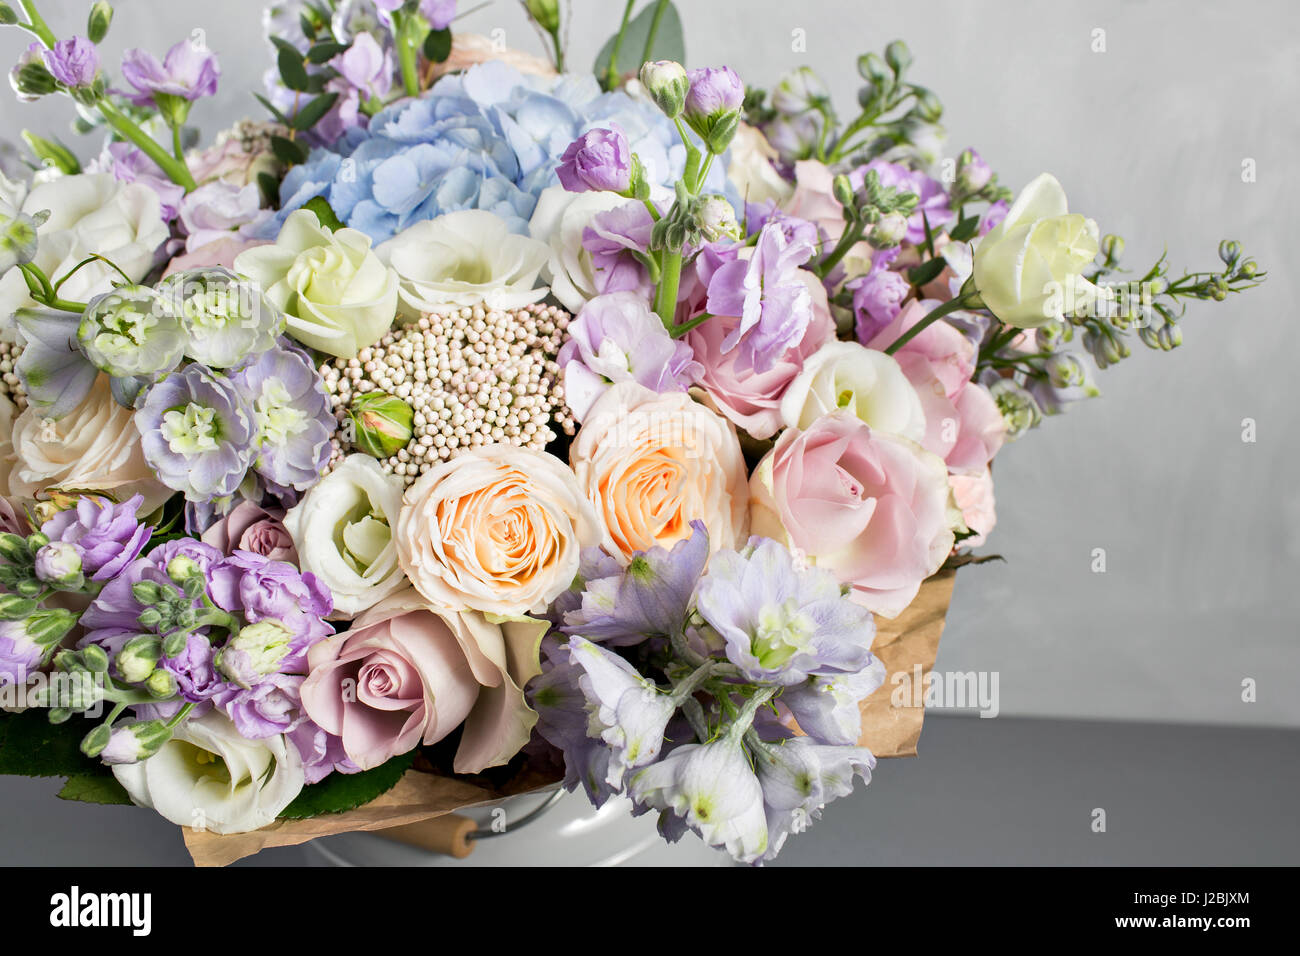 Still life with a bouquet of flowers the florist put together a still life with a bouquet of flowers the florist put together a beautiful bunch of flowers man manual work used different types of flowers and colors izmirmasajfo Images